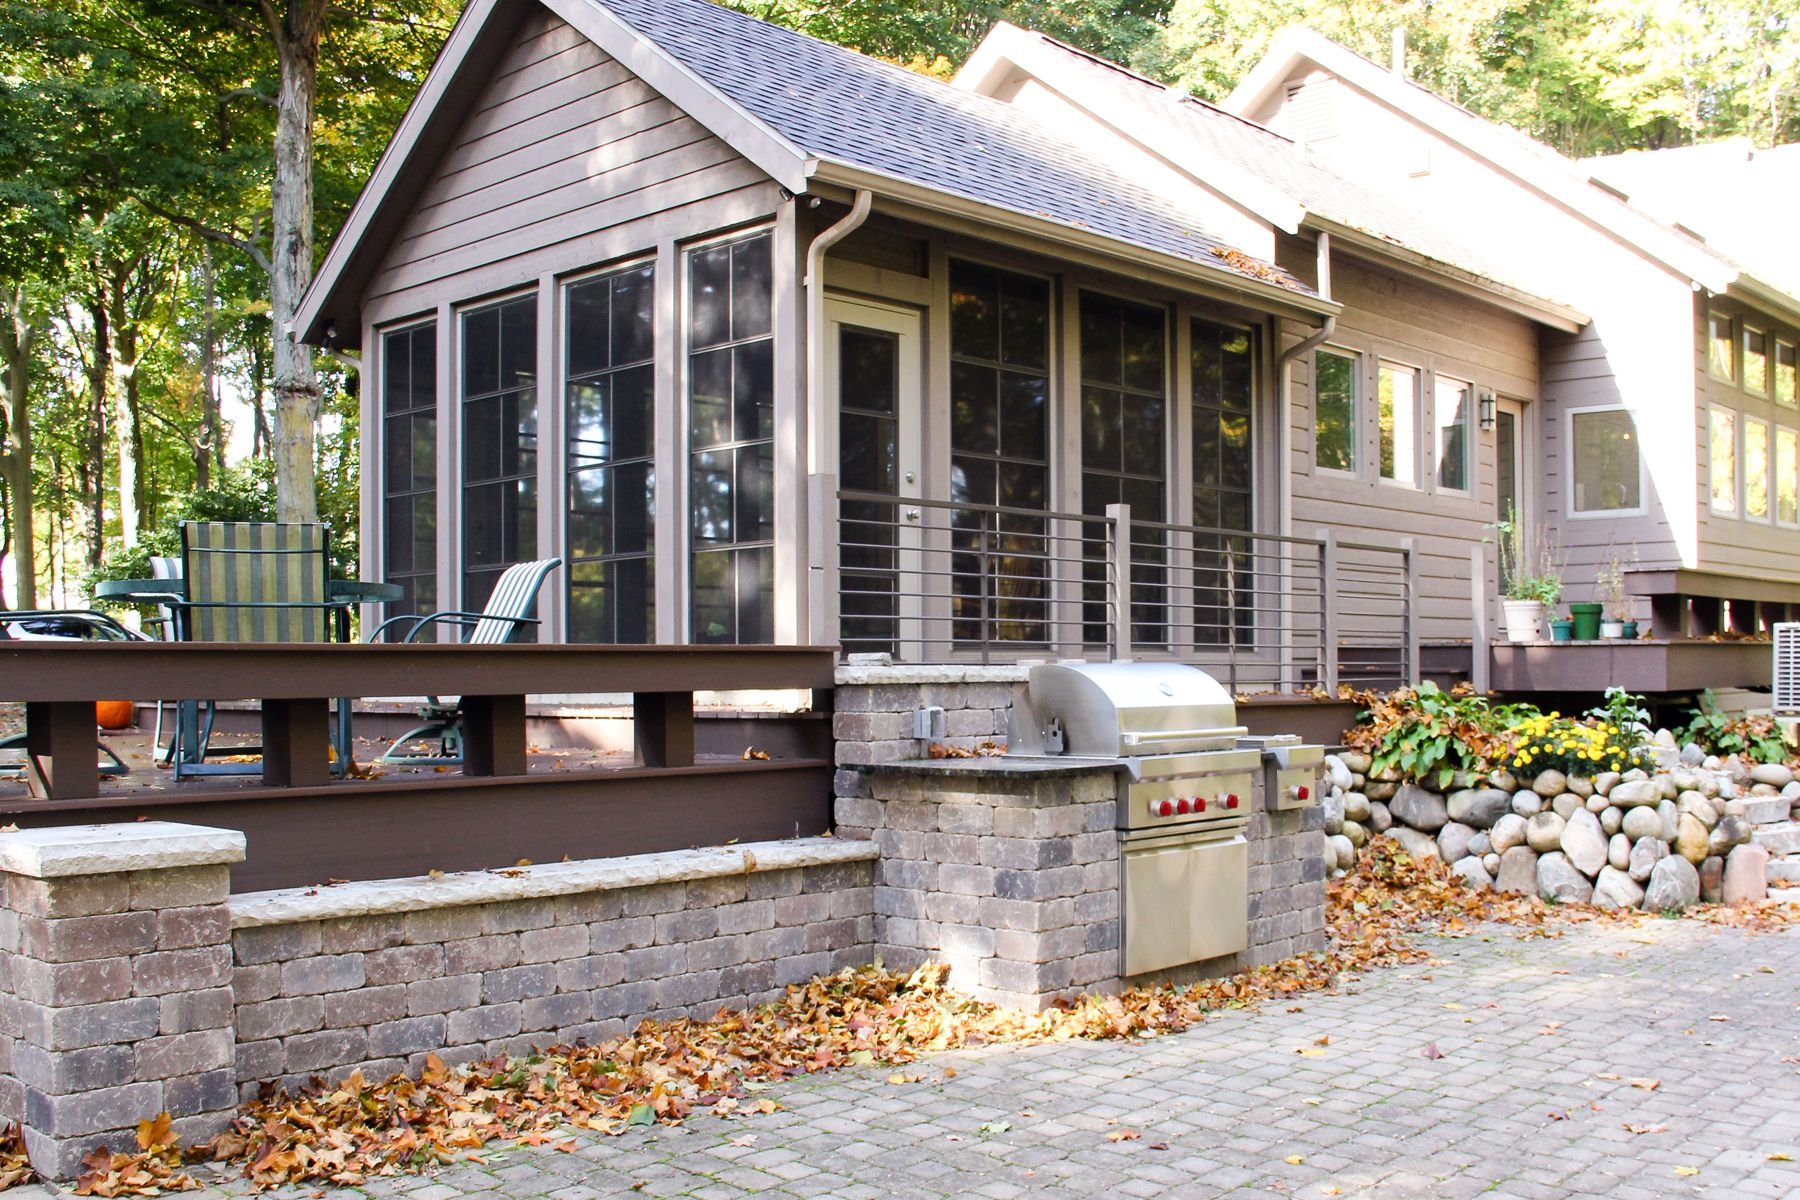 Bon Brand New Porch, Enclosure By Raber Patio, Iron Railing By